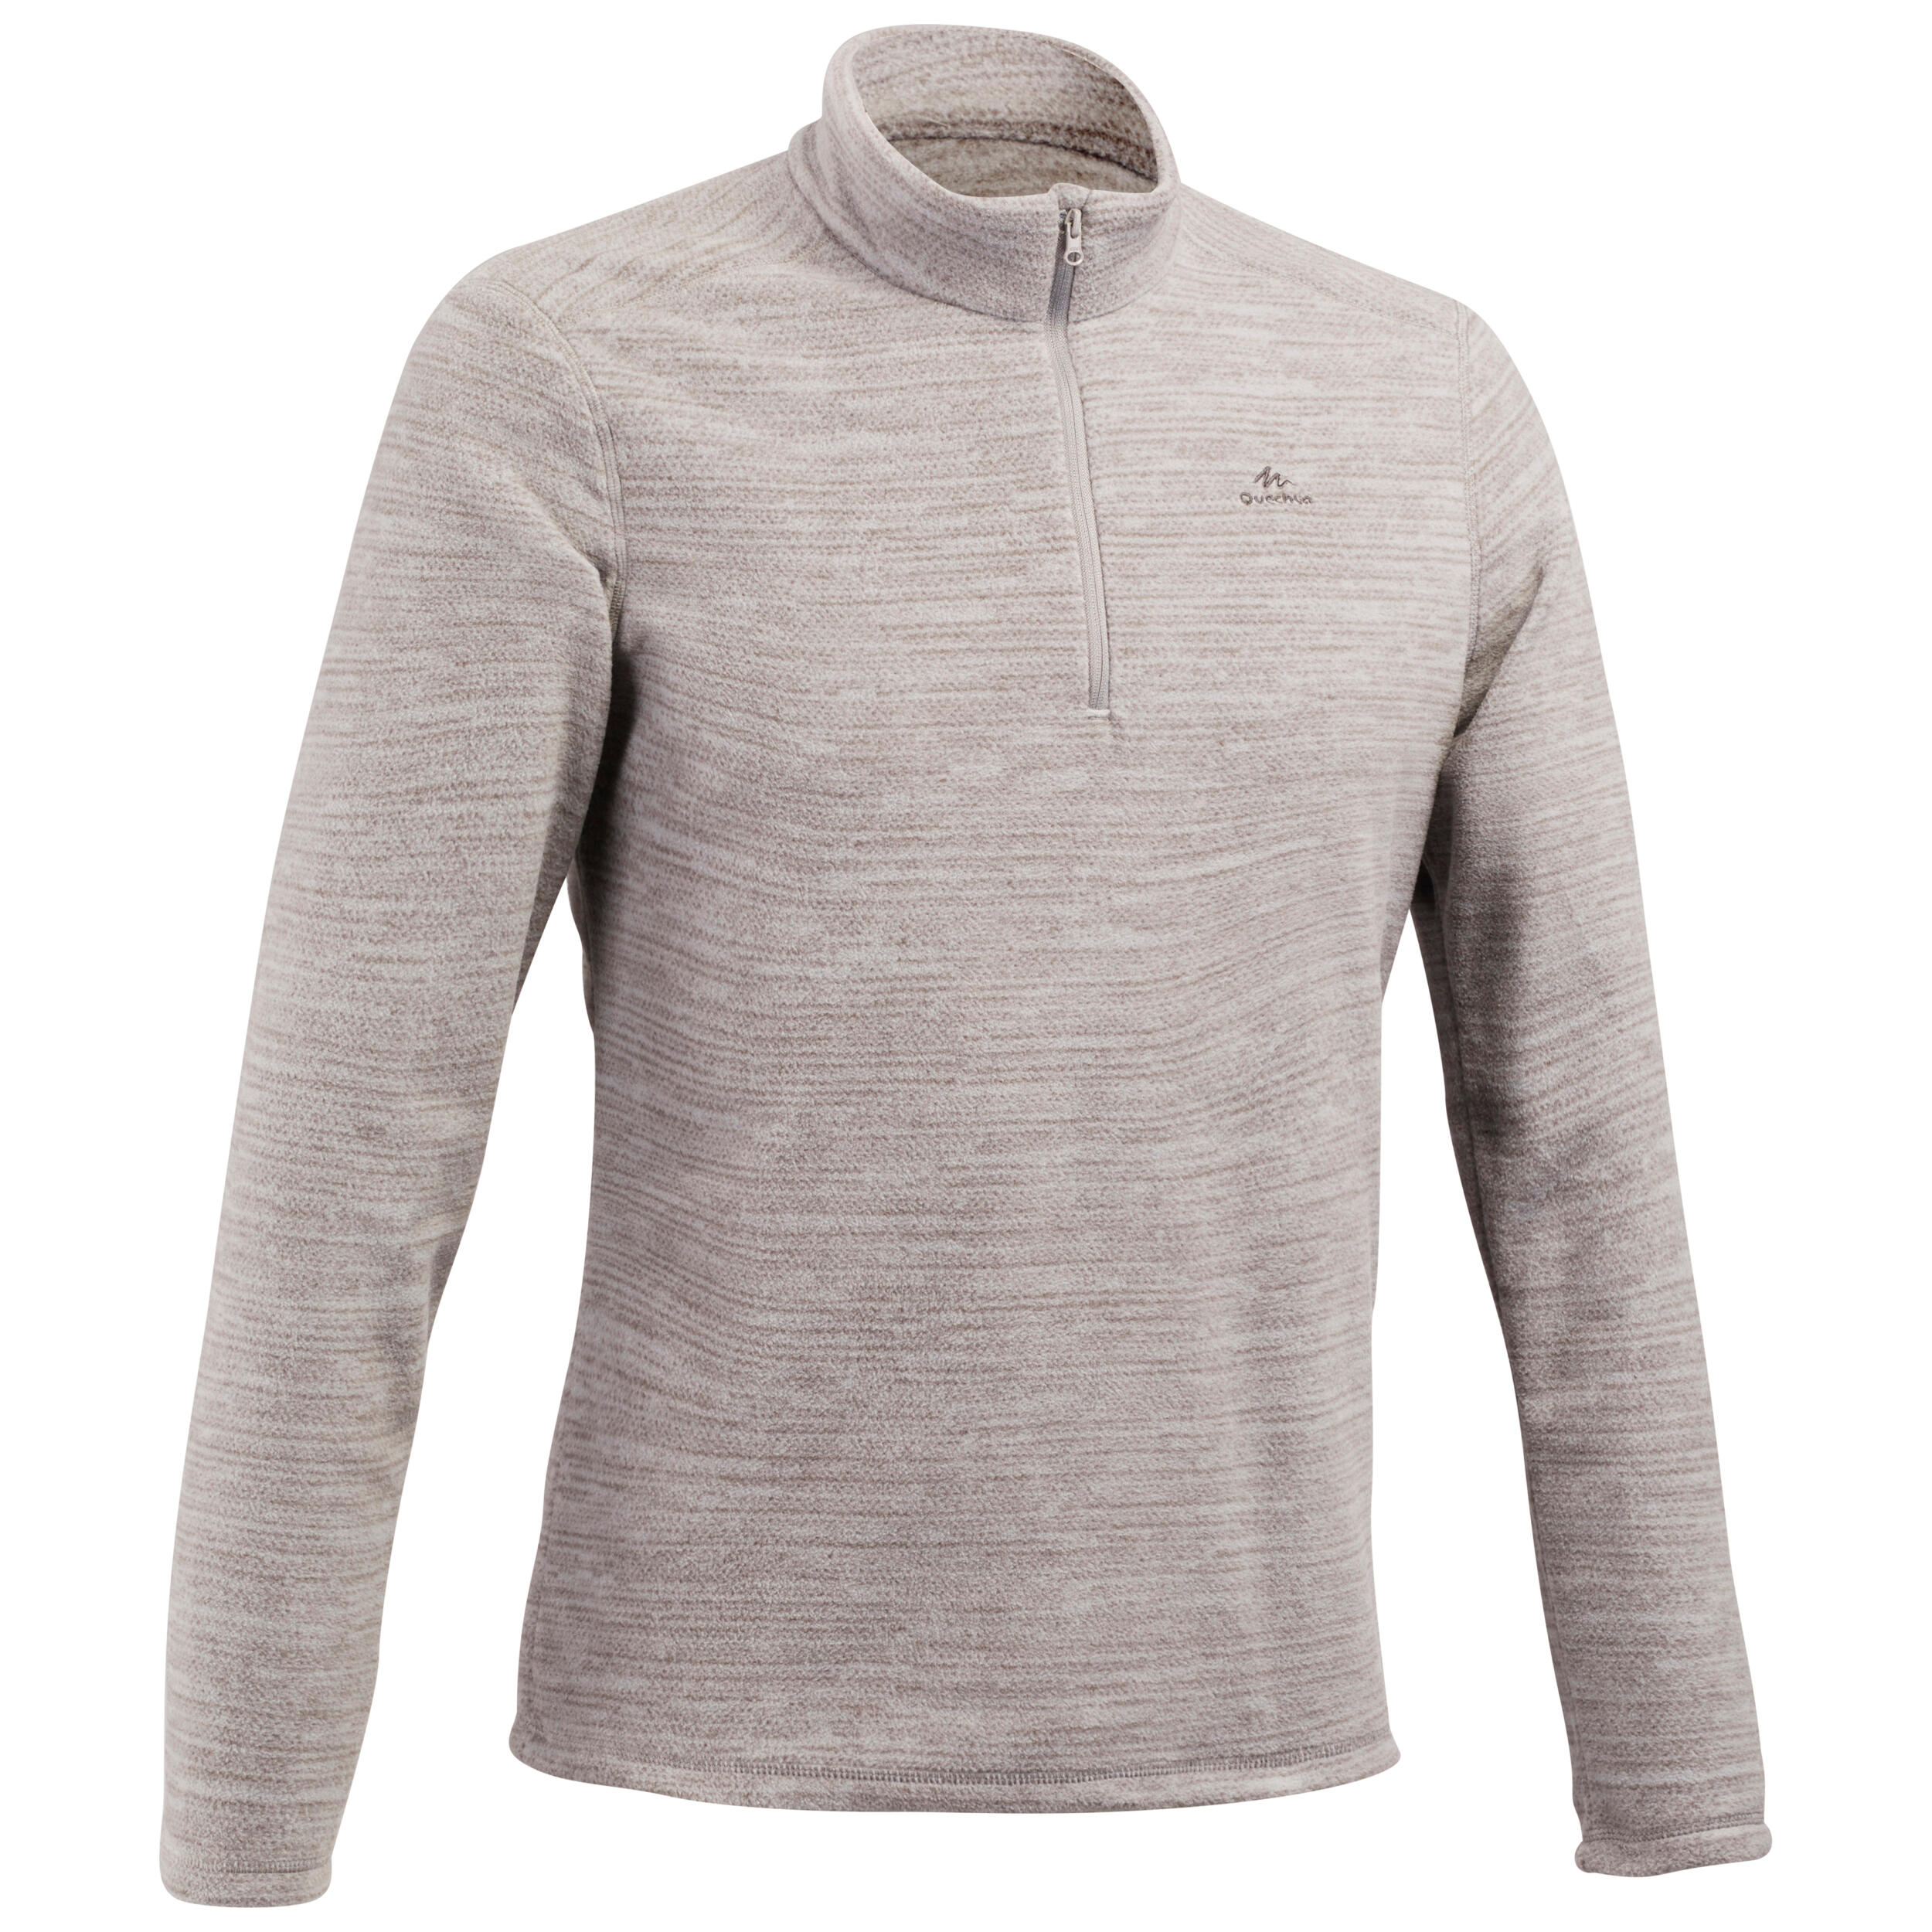 # Identic Hommes Pull Tricot Pull Pull chiné-taille 5xl Grande Taille